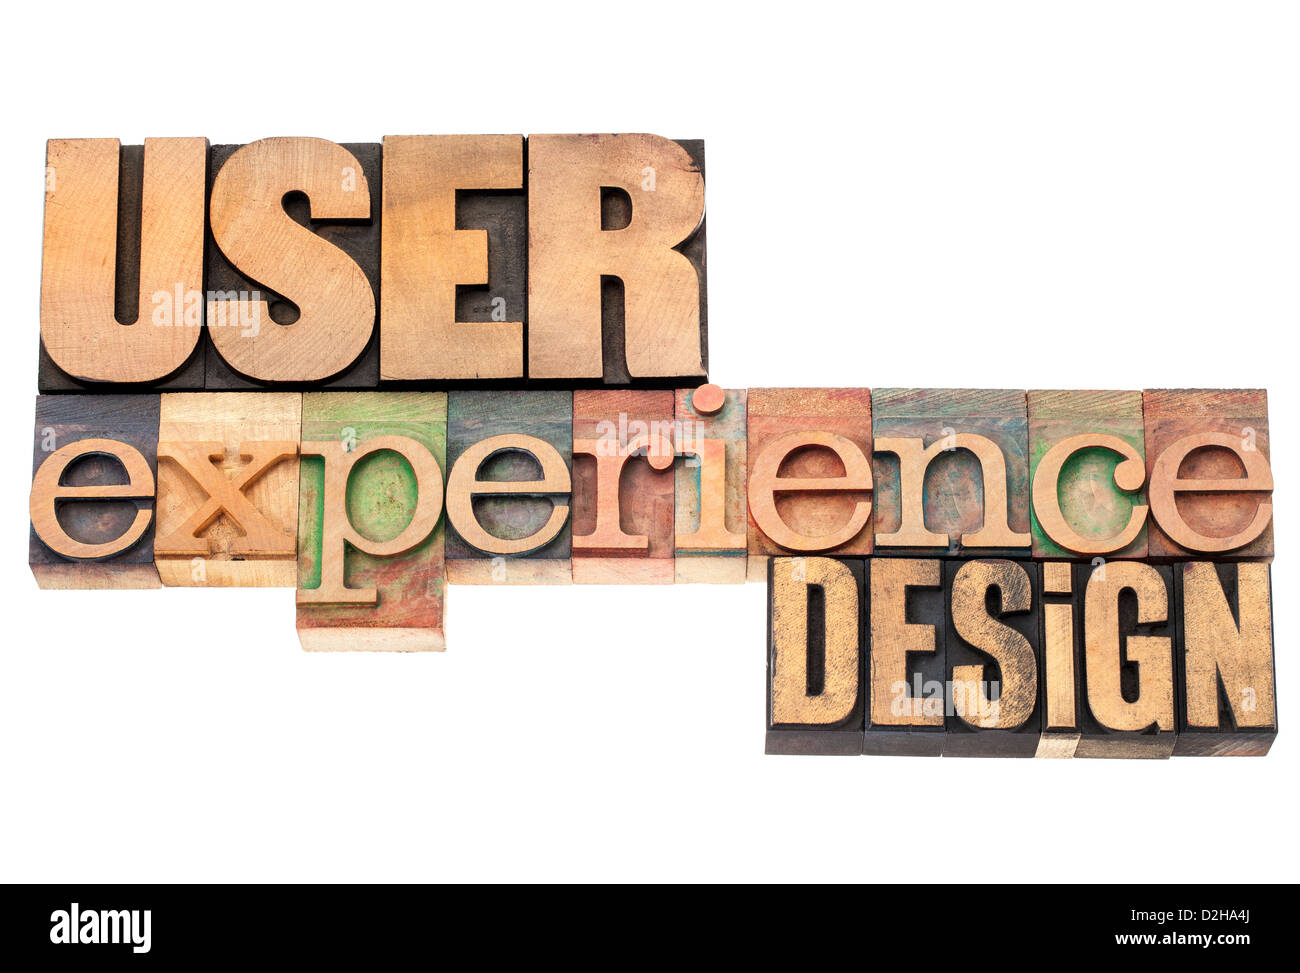 user experience design - industrial design concept - isolated text in vintage letterpress wood type printing blocks - Stock Image